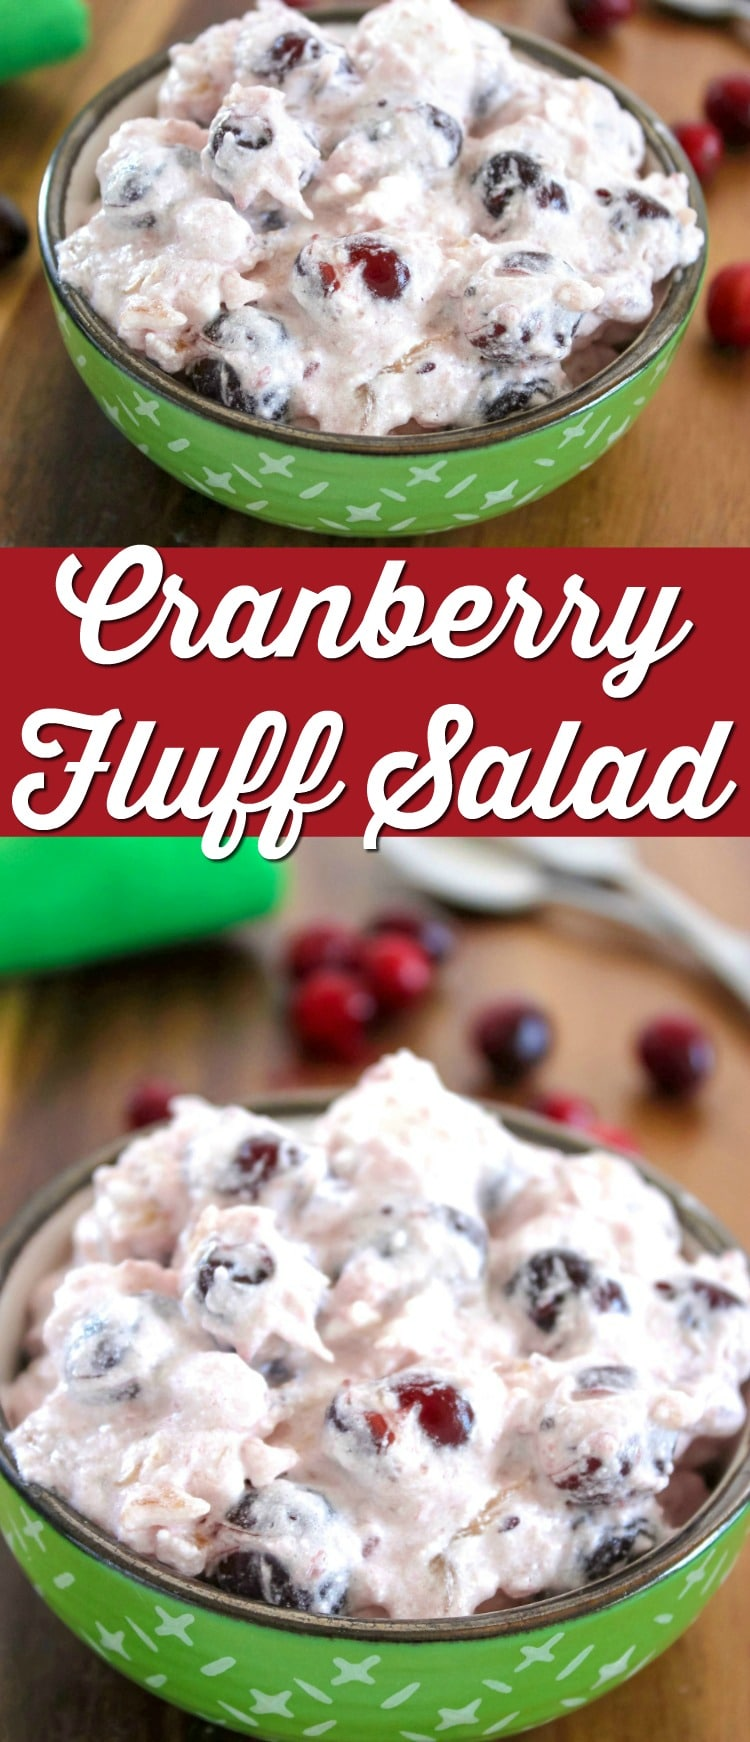 cranberry fluff salad recipe